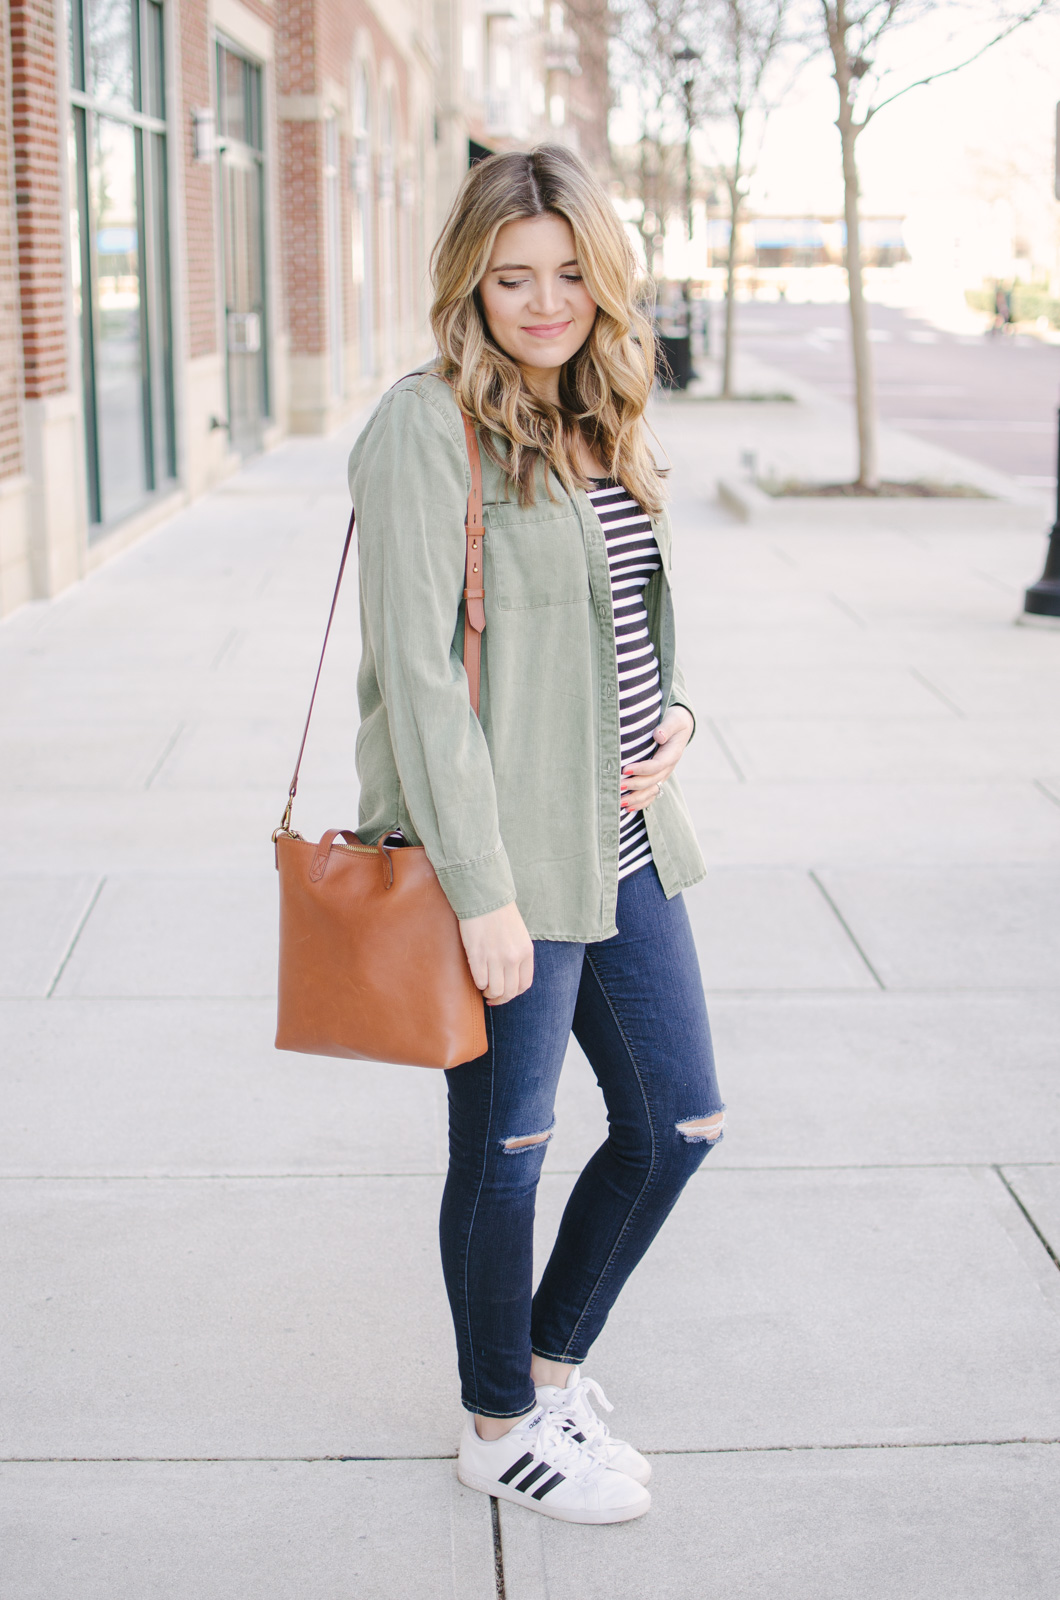 go-to maternity outfit - the essential maternity outfit combination for casual days! Shop this look or see more casual maternity fashion at bylaurenm.com!